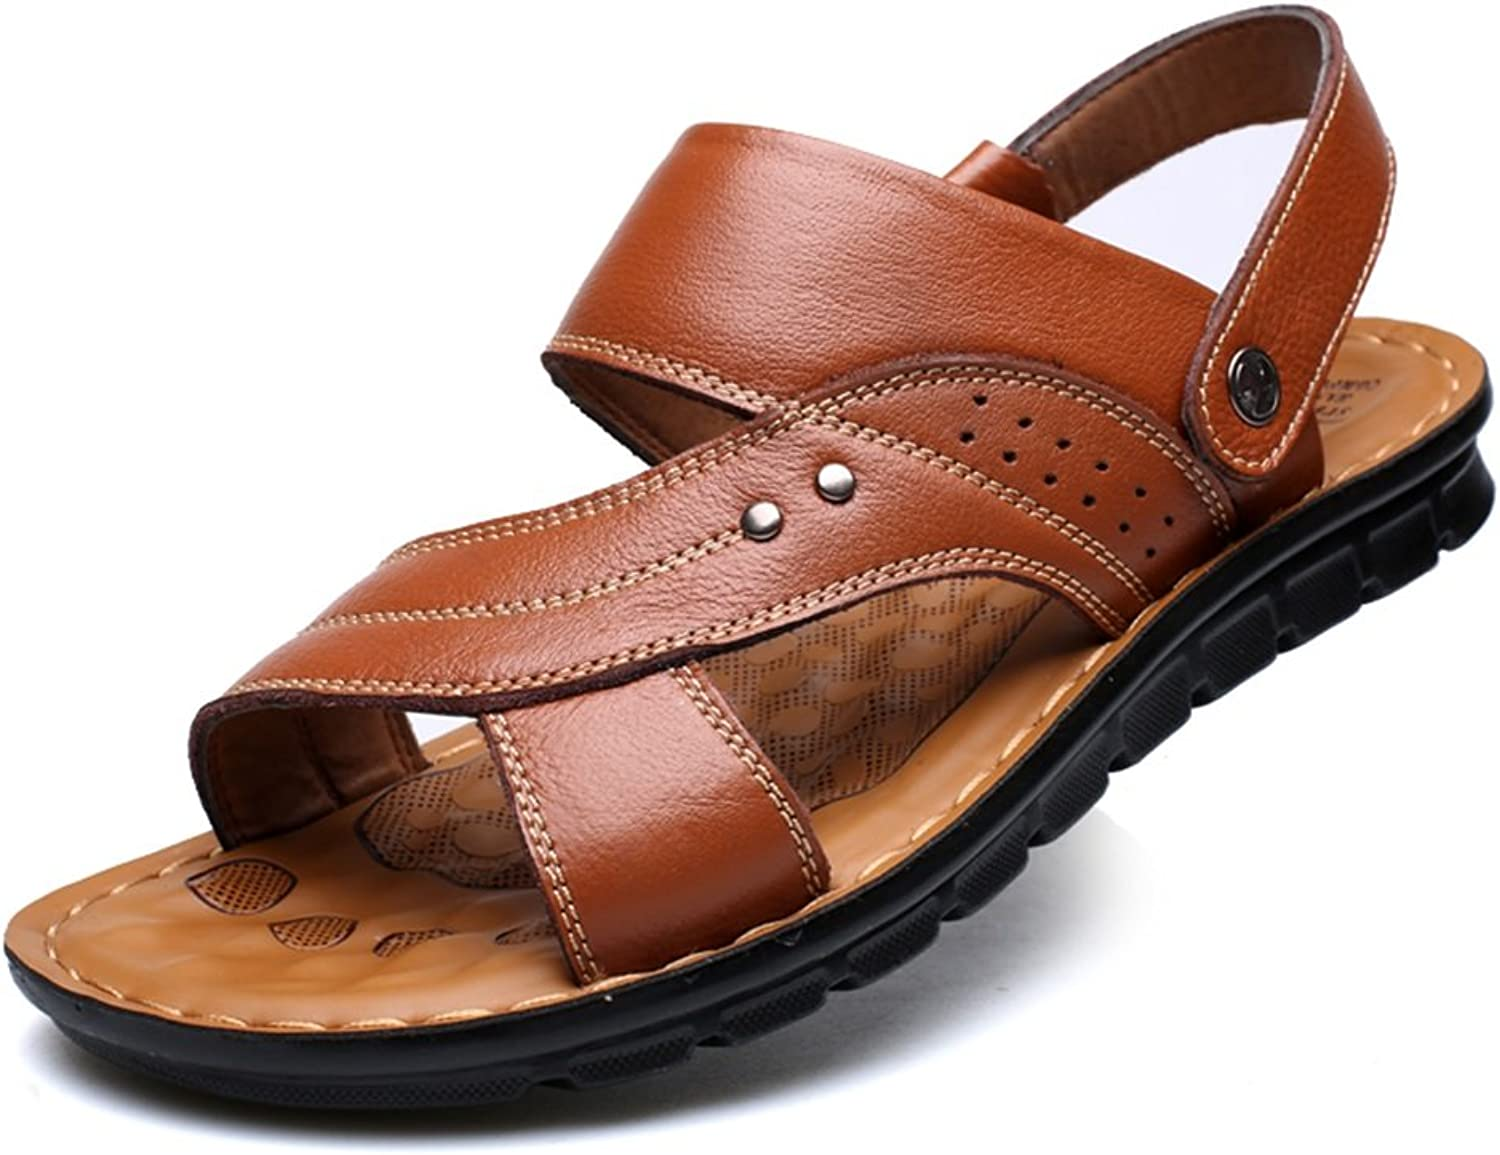 QIDI Sandals Male Polyurethane Open Toe Large Size Non-slip Casual Summer Beach shoes Slippers (color   Light Brown, Size   EU39 UK6)